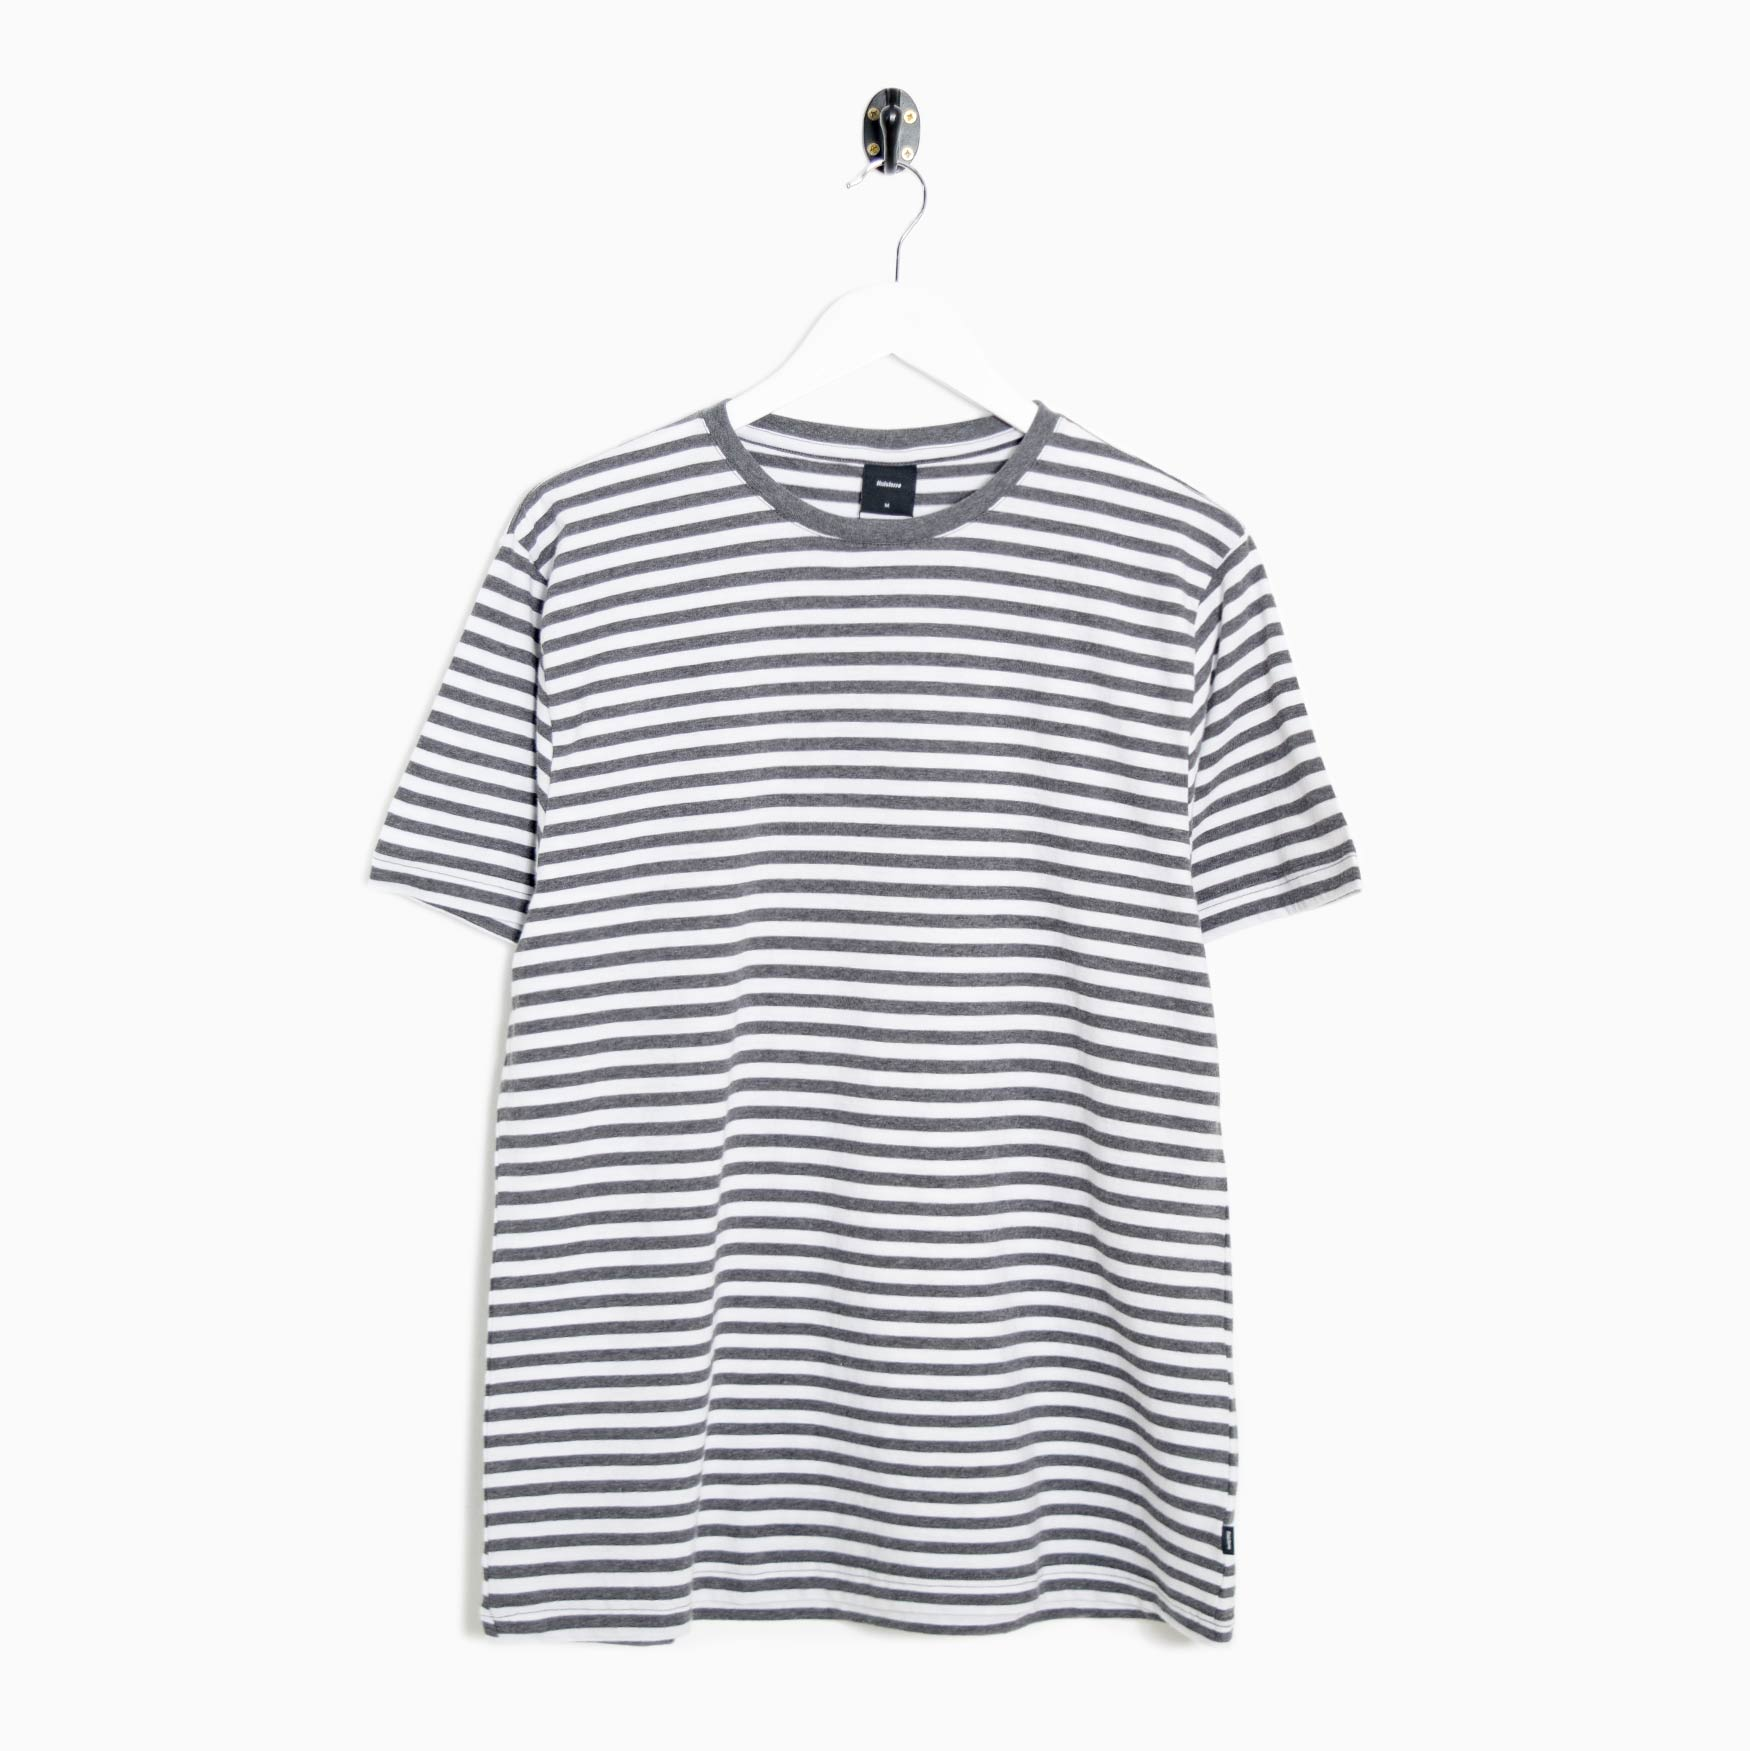 Finisterre Bannel Stripe T-Shirt - Charcoal / White - CARTOCON